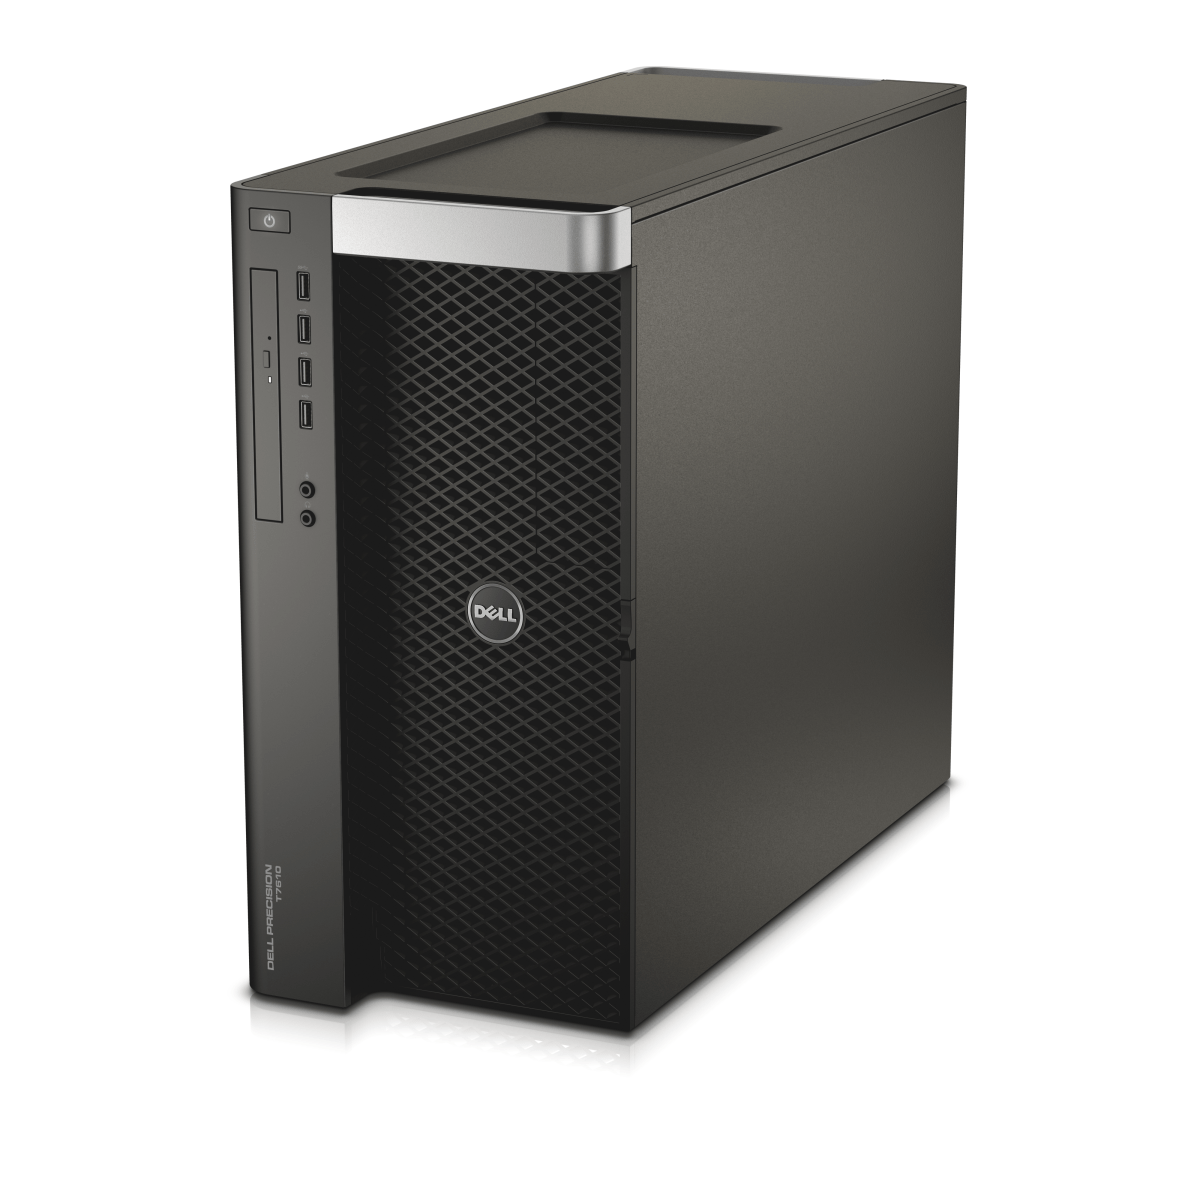 Server Dell Precision T7610 Workstation Berkinerja Tangguh_3